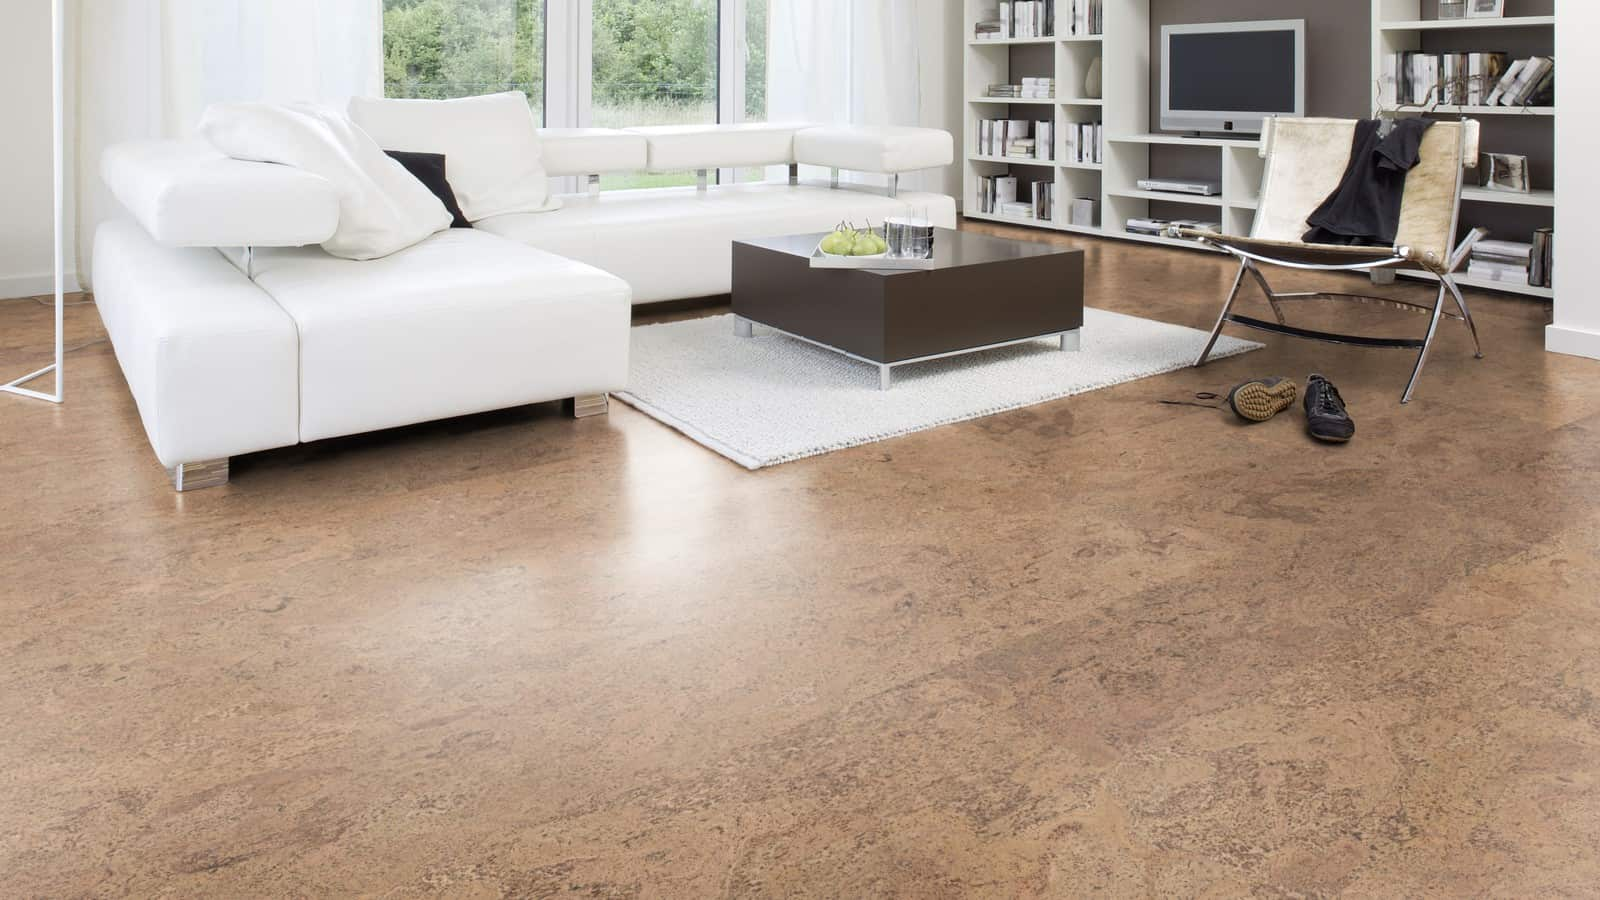 Wicanders cork go in appeal budget friendly floating cork floor new wicanders cork go floating cork floor in appeal dailygadgetfo Choice Image